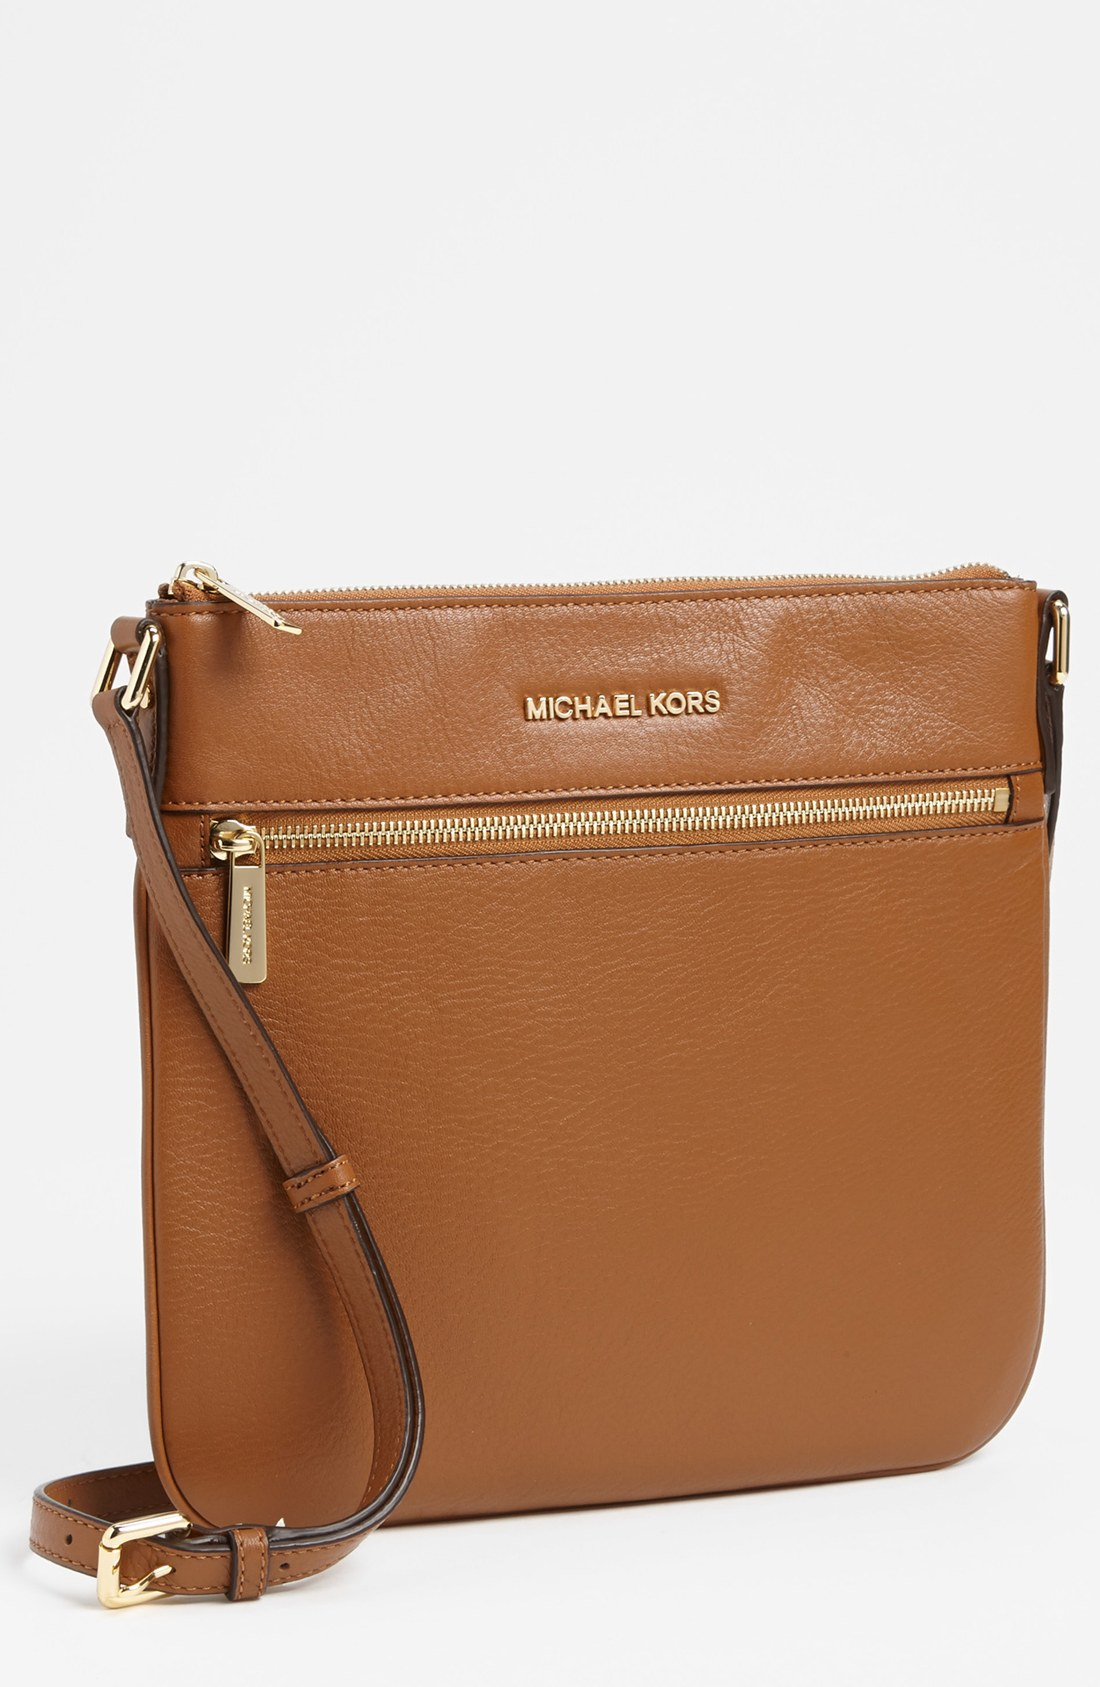 a8dd5d49810a49 Michael Kors Cross Body Bag On Sale | Stanford Center for ...